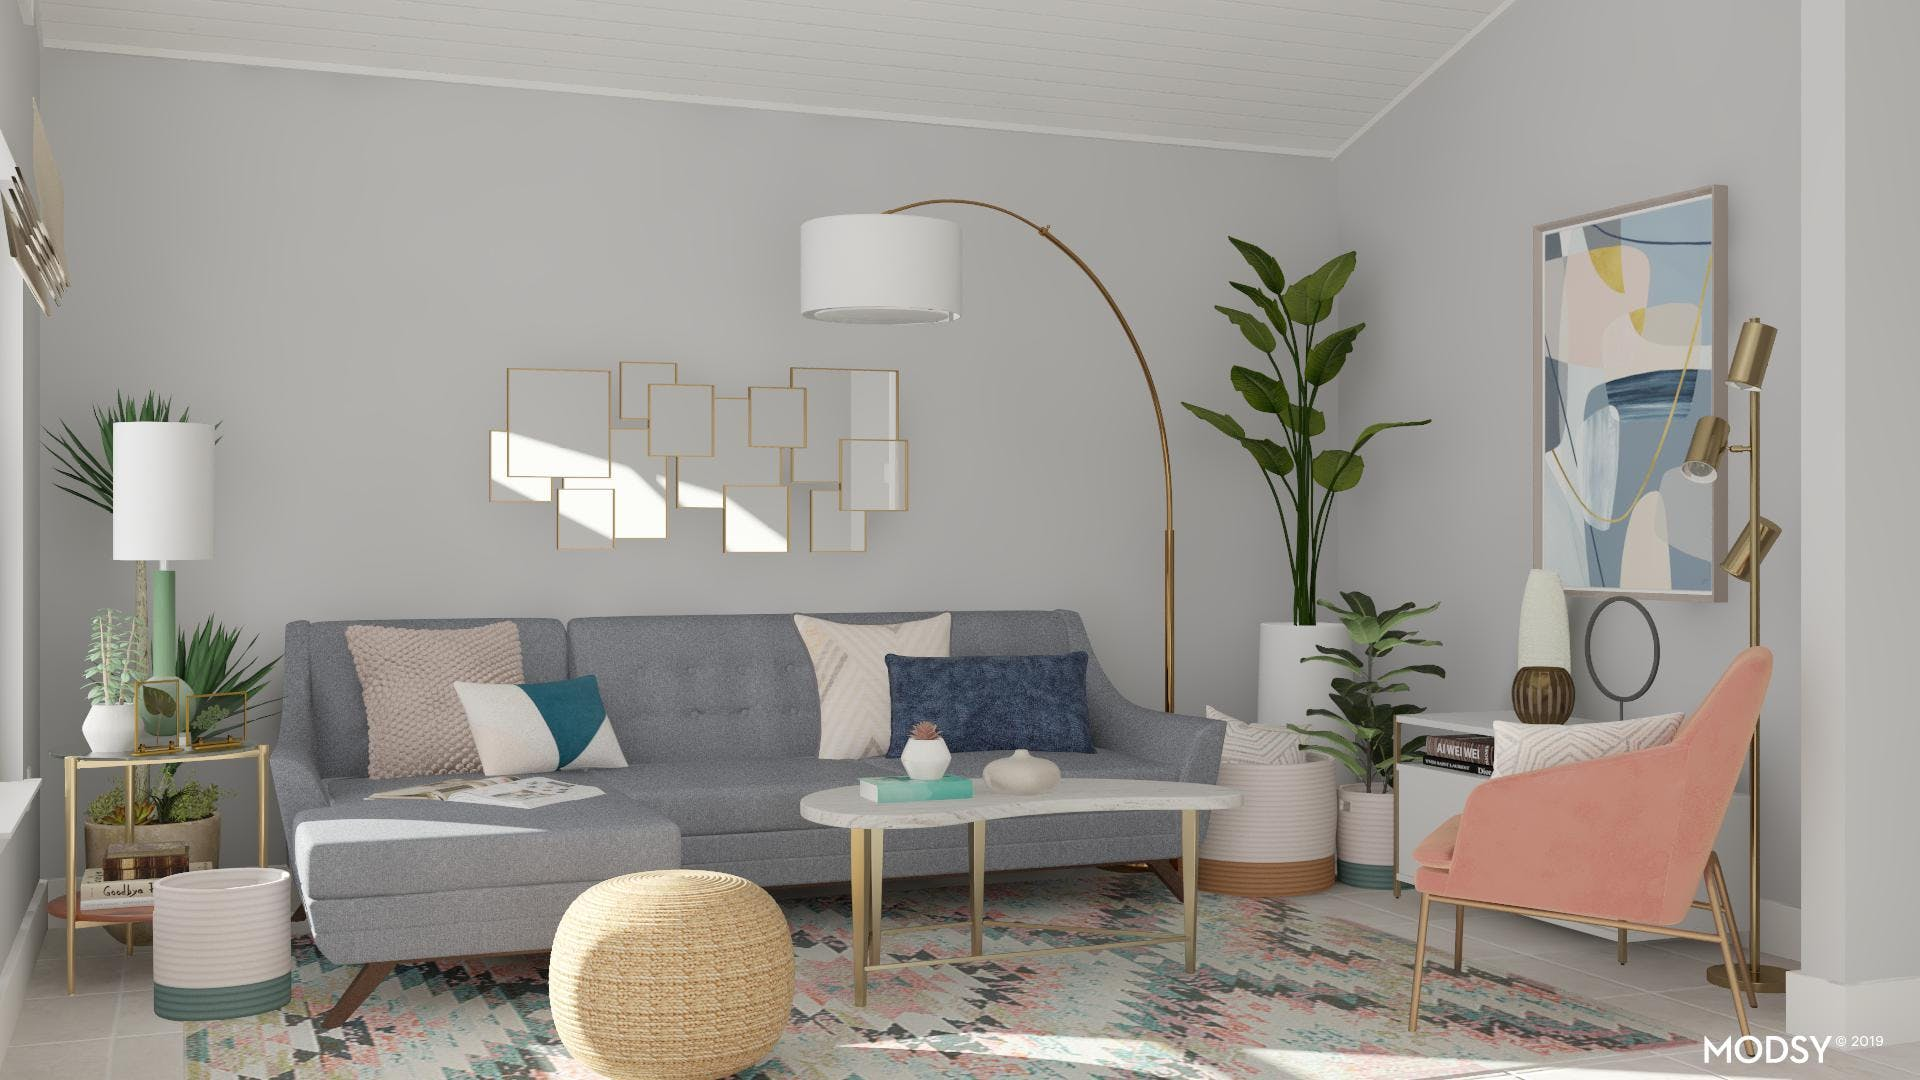 Pastel Modern Living Room With Mid-Century Accents